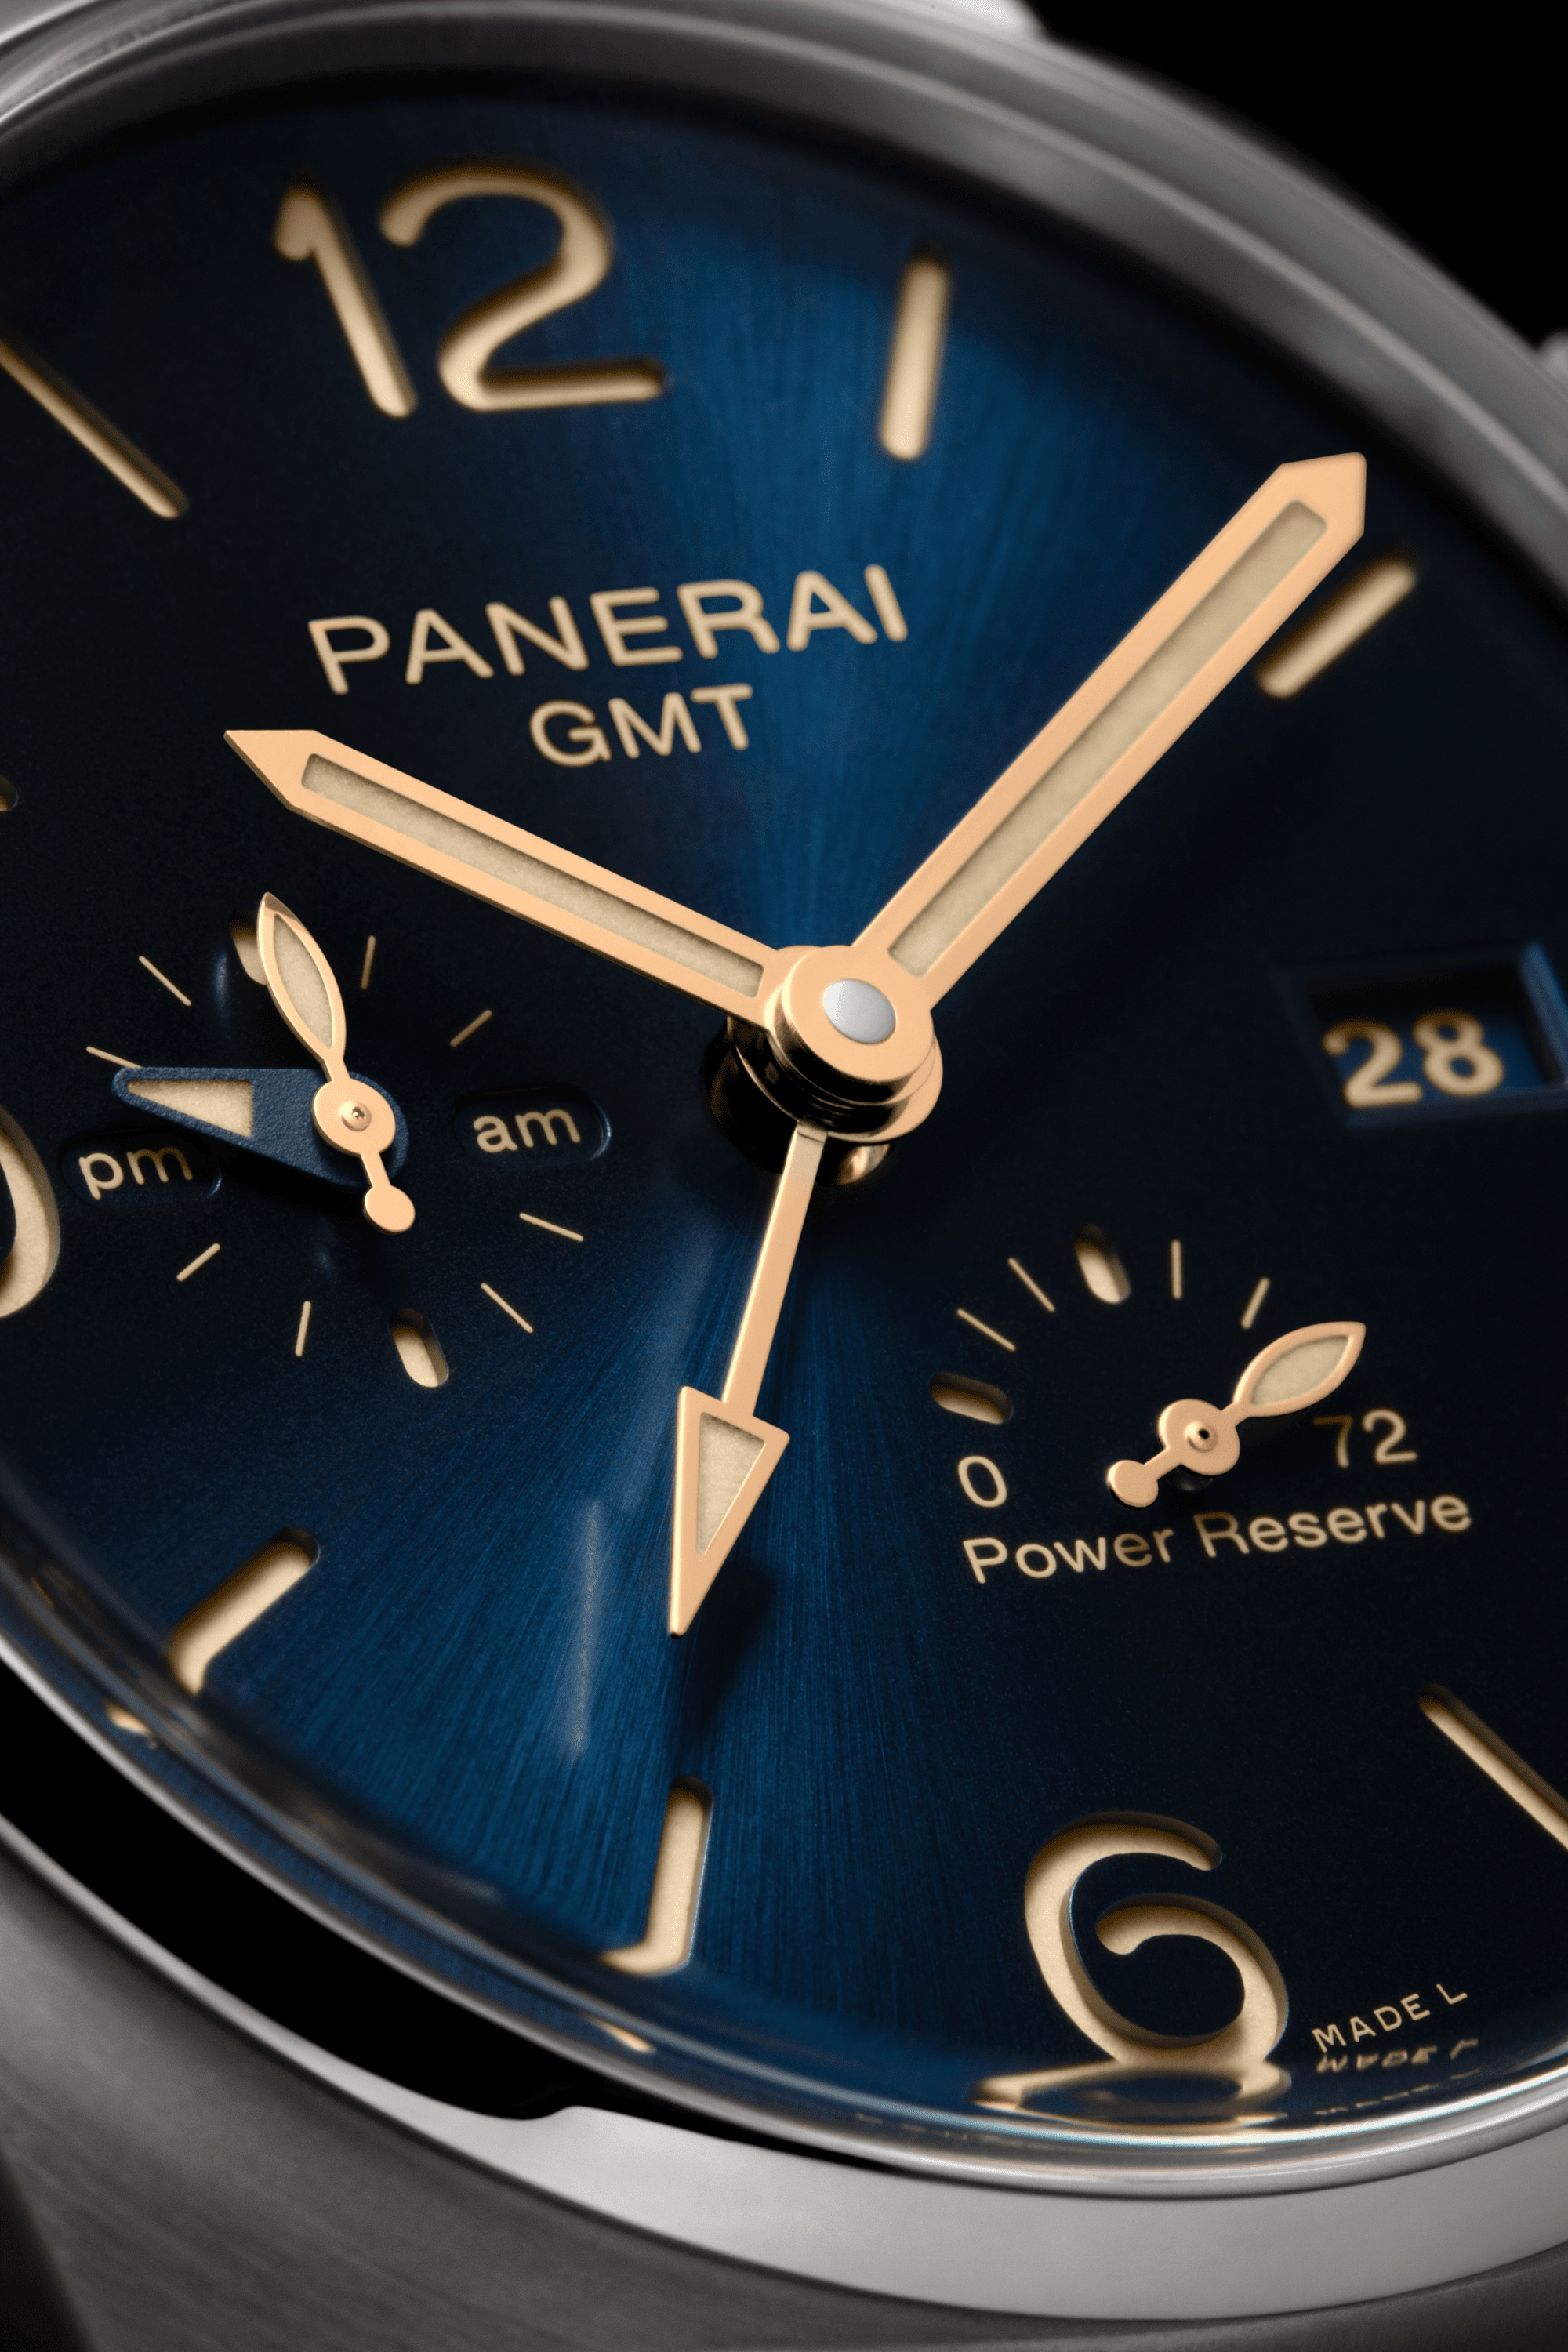 PNPAM00964 - Luminor Due GMT Power Reserve - 45mm